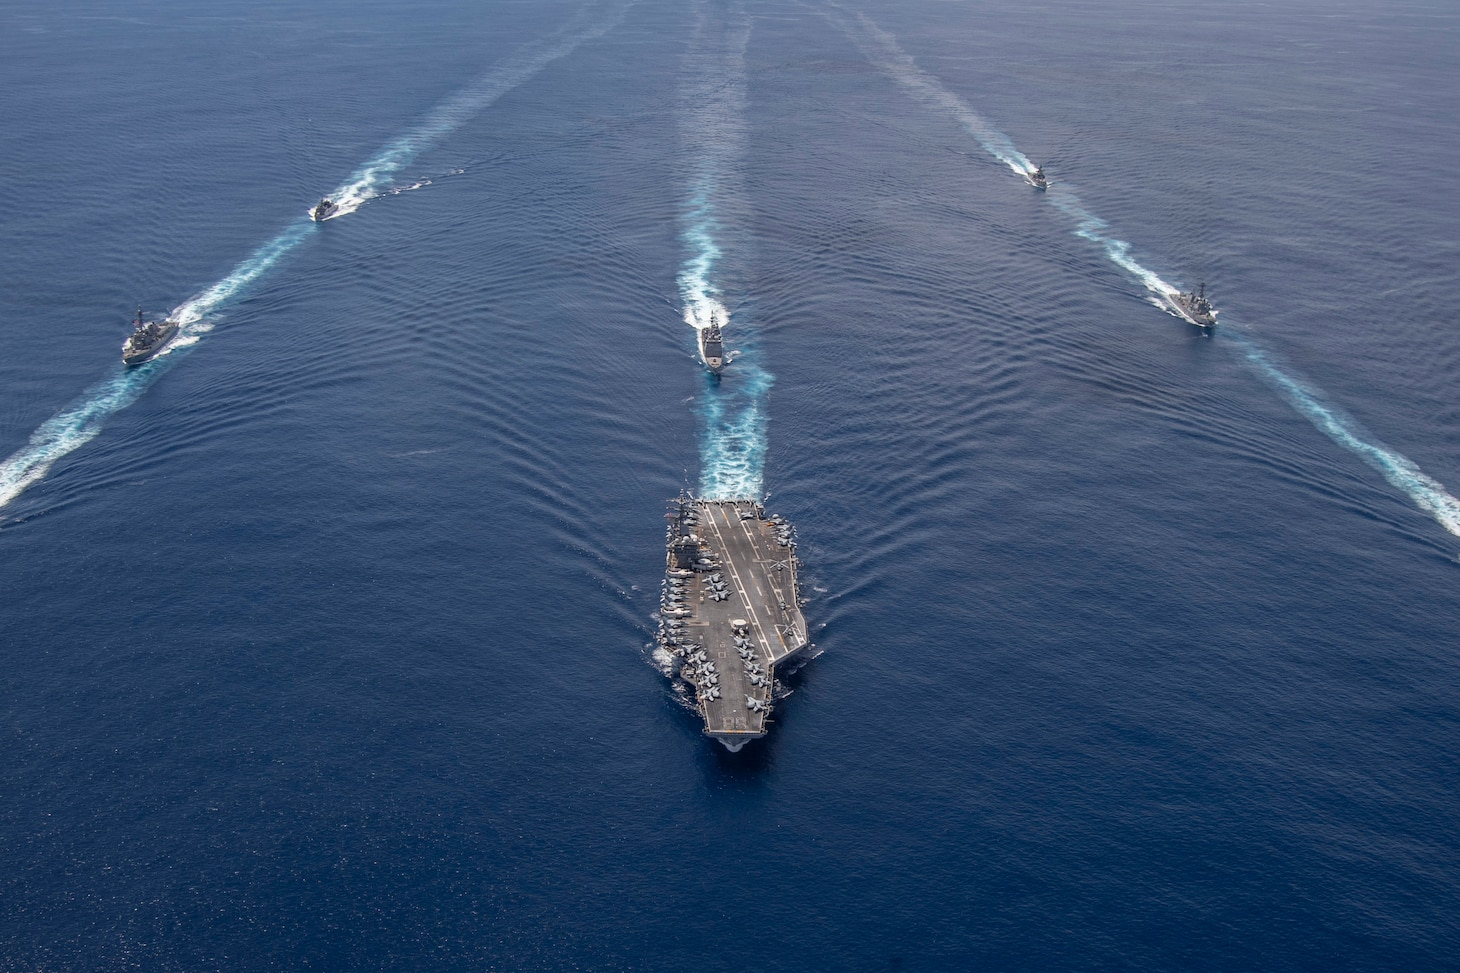 Ships sail in formation.